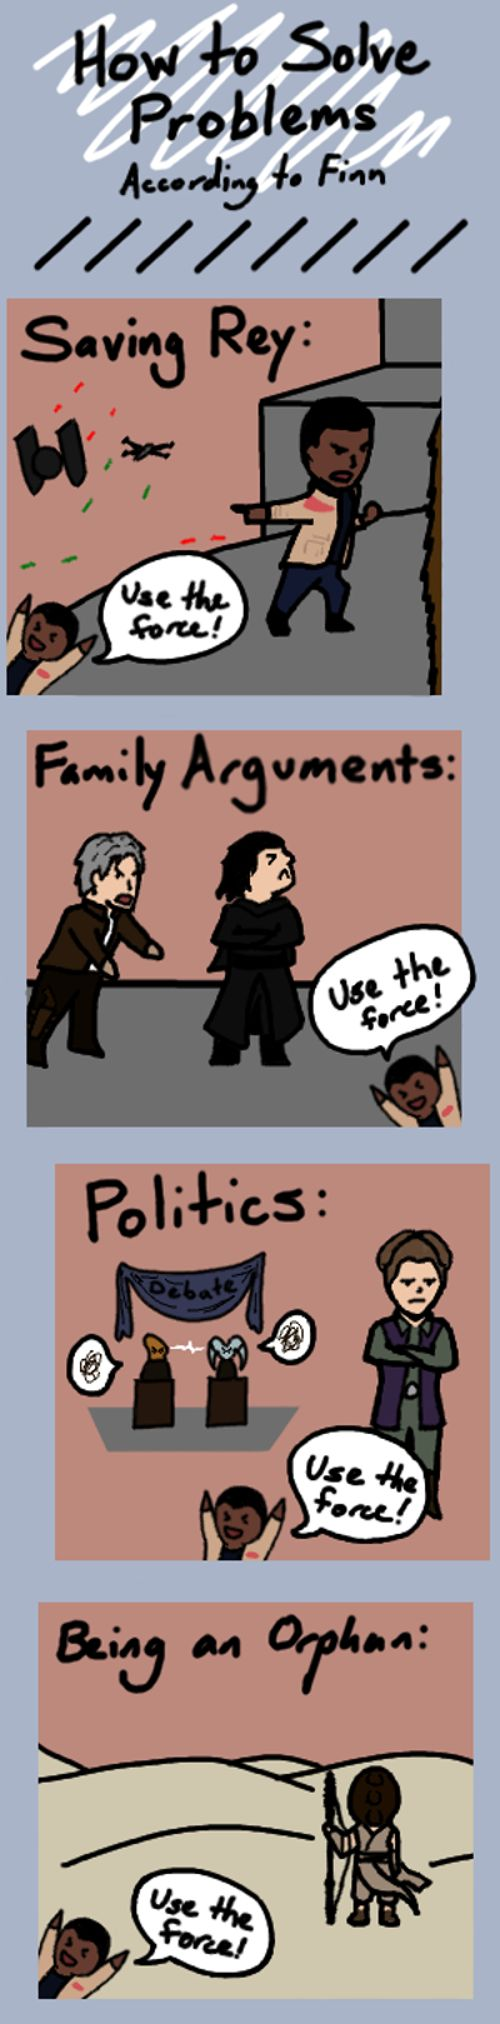 That's not how the force works! (TFA SPOILERS) by Himika1222.deviantart.com on @DeviantArt SPOILERS, the force awakens, Finn, Han Solo, Kylo Ren, Leia, Chewbacca, Rey, funny, humor, comic